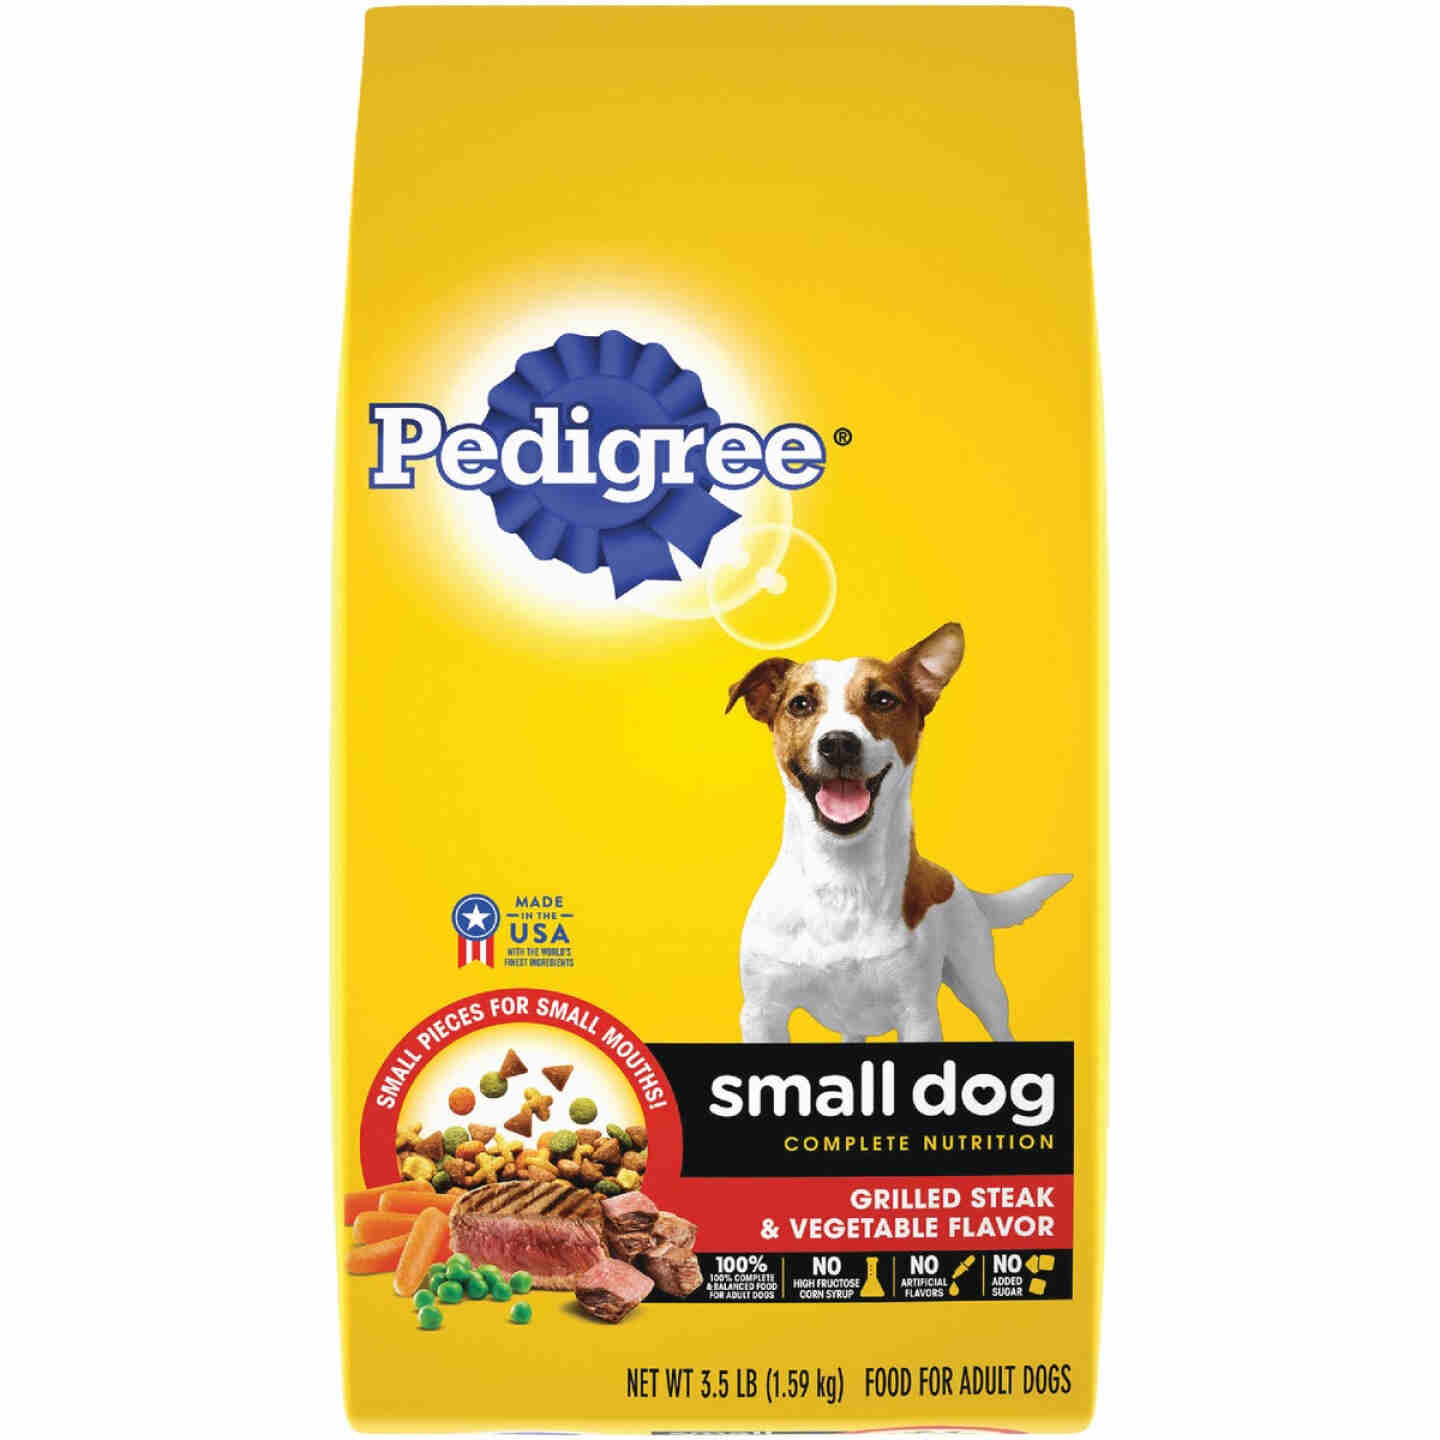 Pedigree Small Dog Complete Nutrition 3.5 Lb. Grilled Steak Vegetable Adult Dry Dog Food Image 1